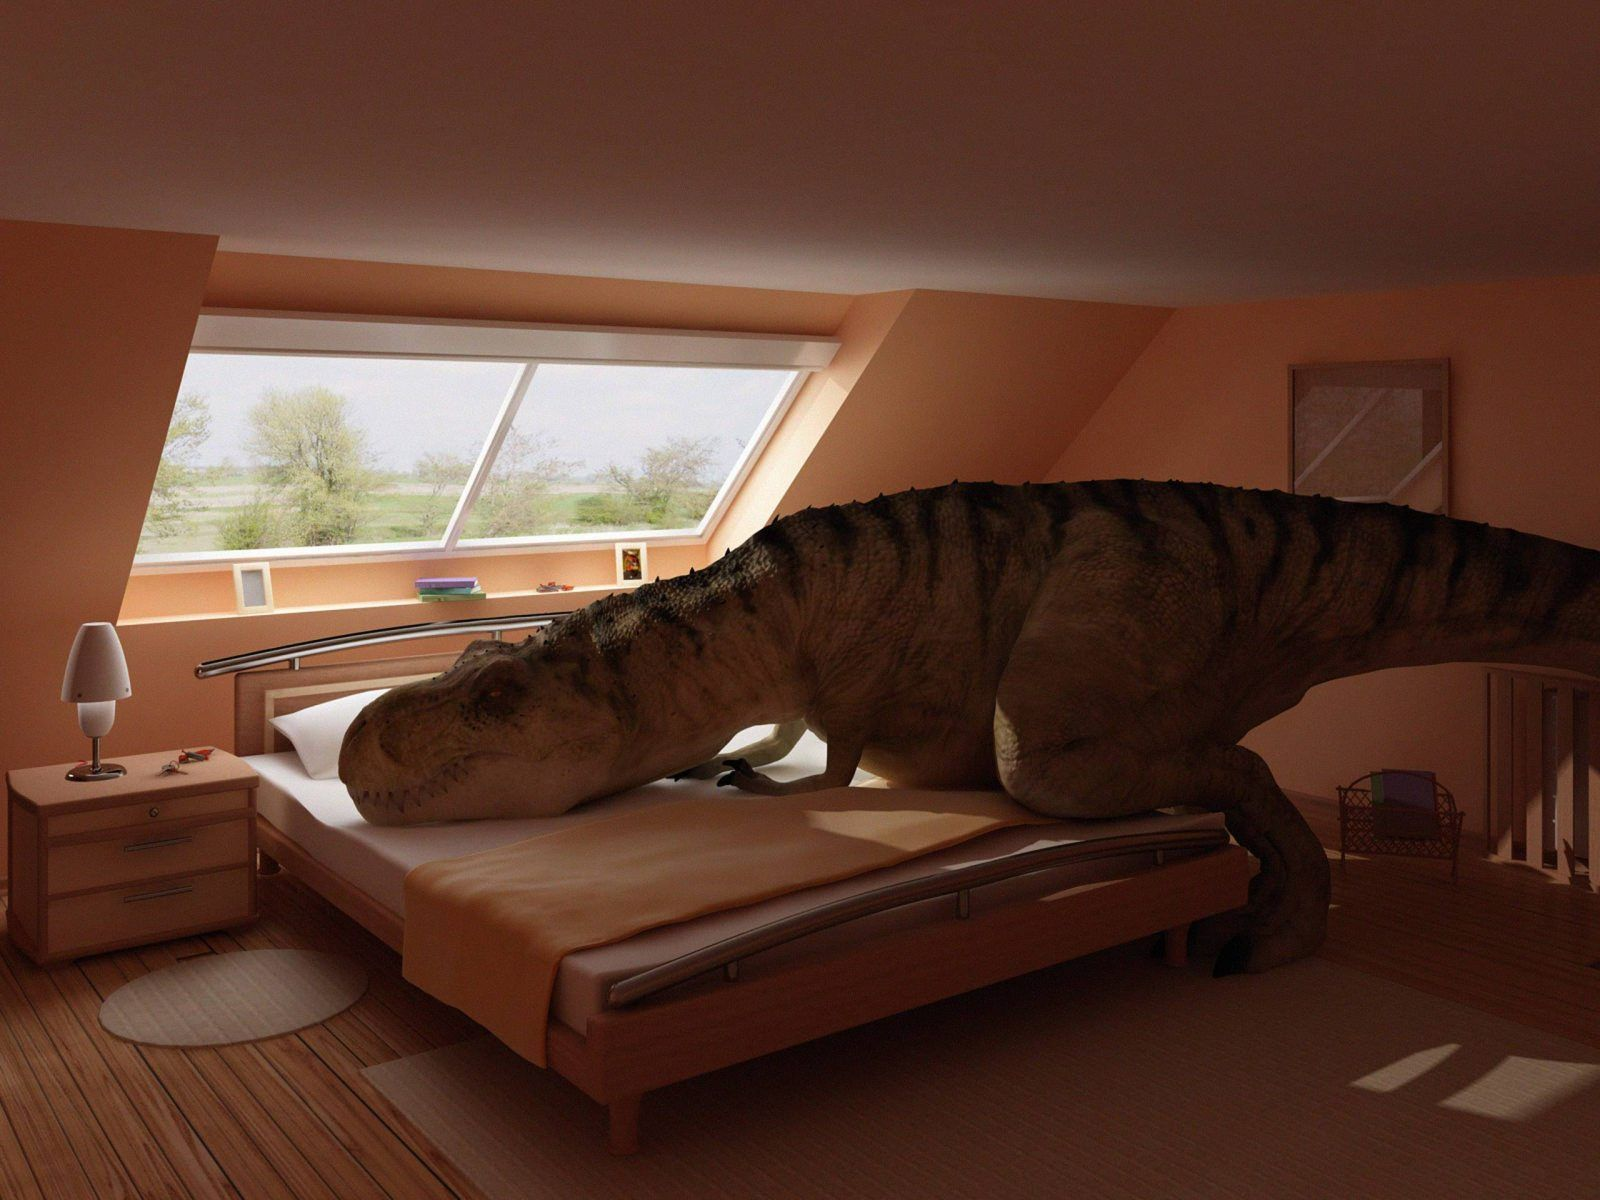 T-Rex needs a king size bed.